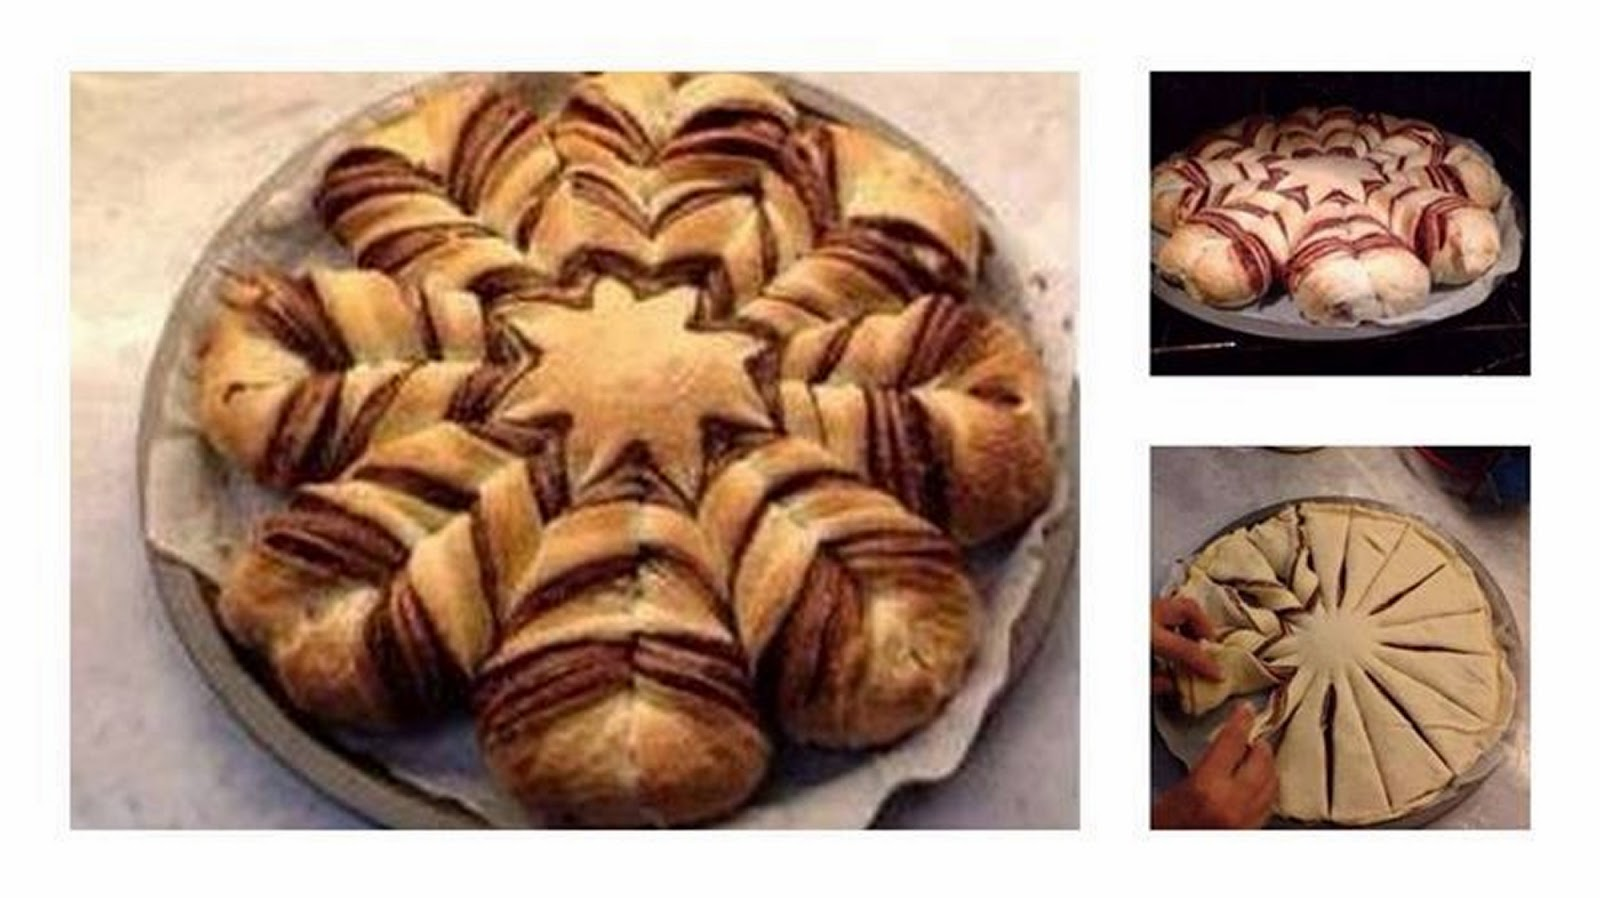 http://diply.com/different-solutions/share-a-homemade-braided-nutella-bread-with-friends/10713